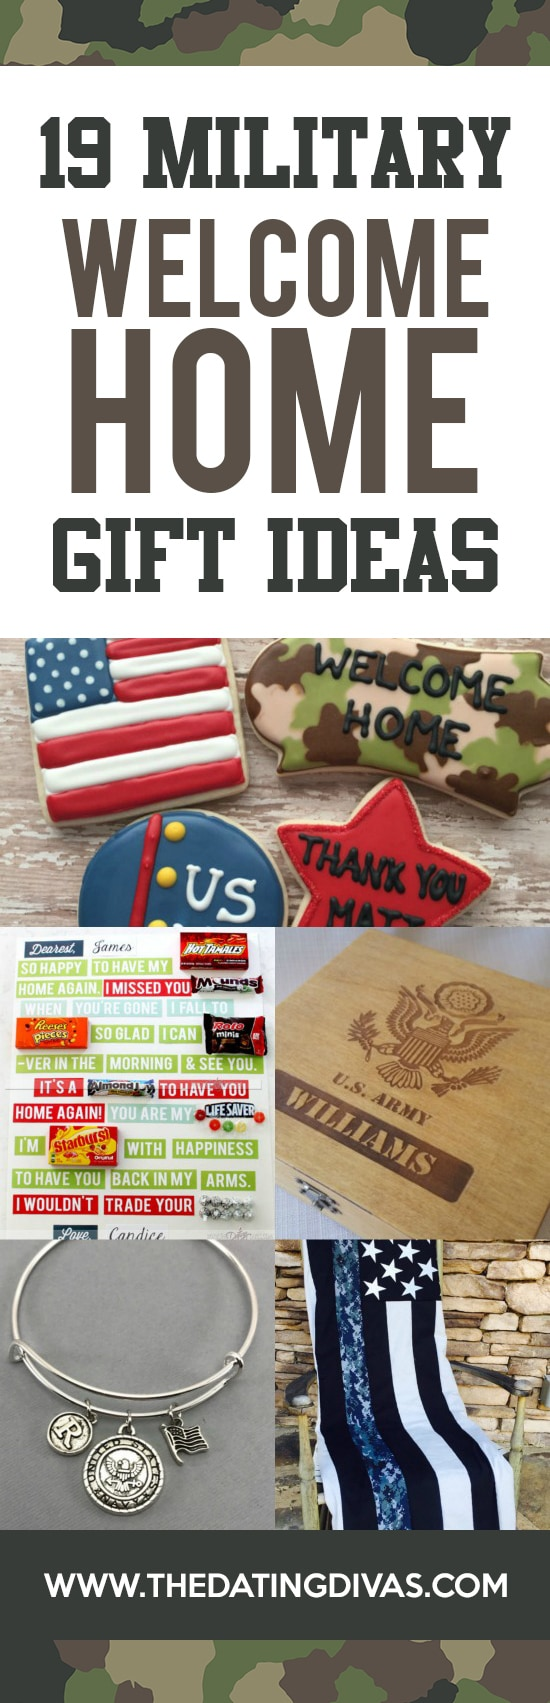 Gift Ideas for Deployment Homecoming